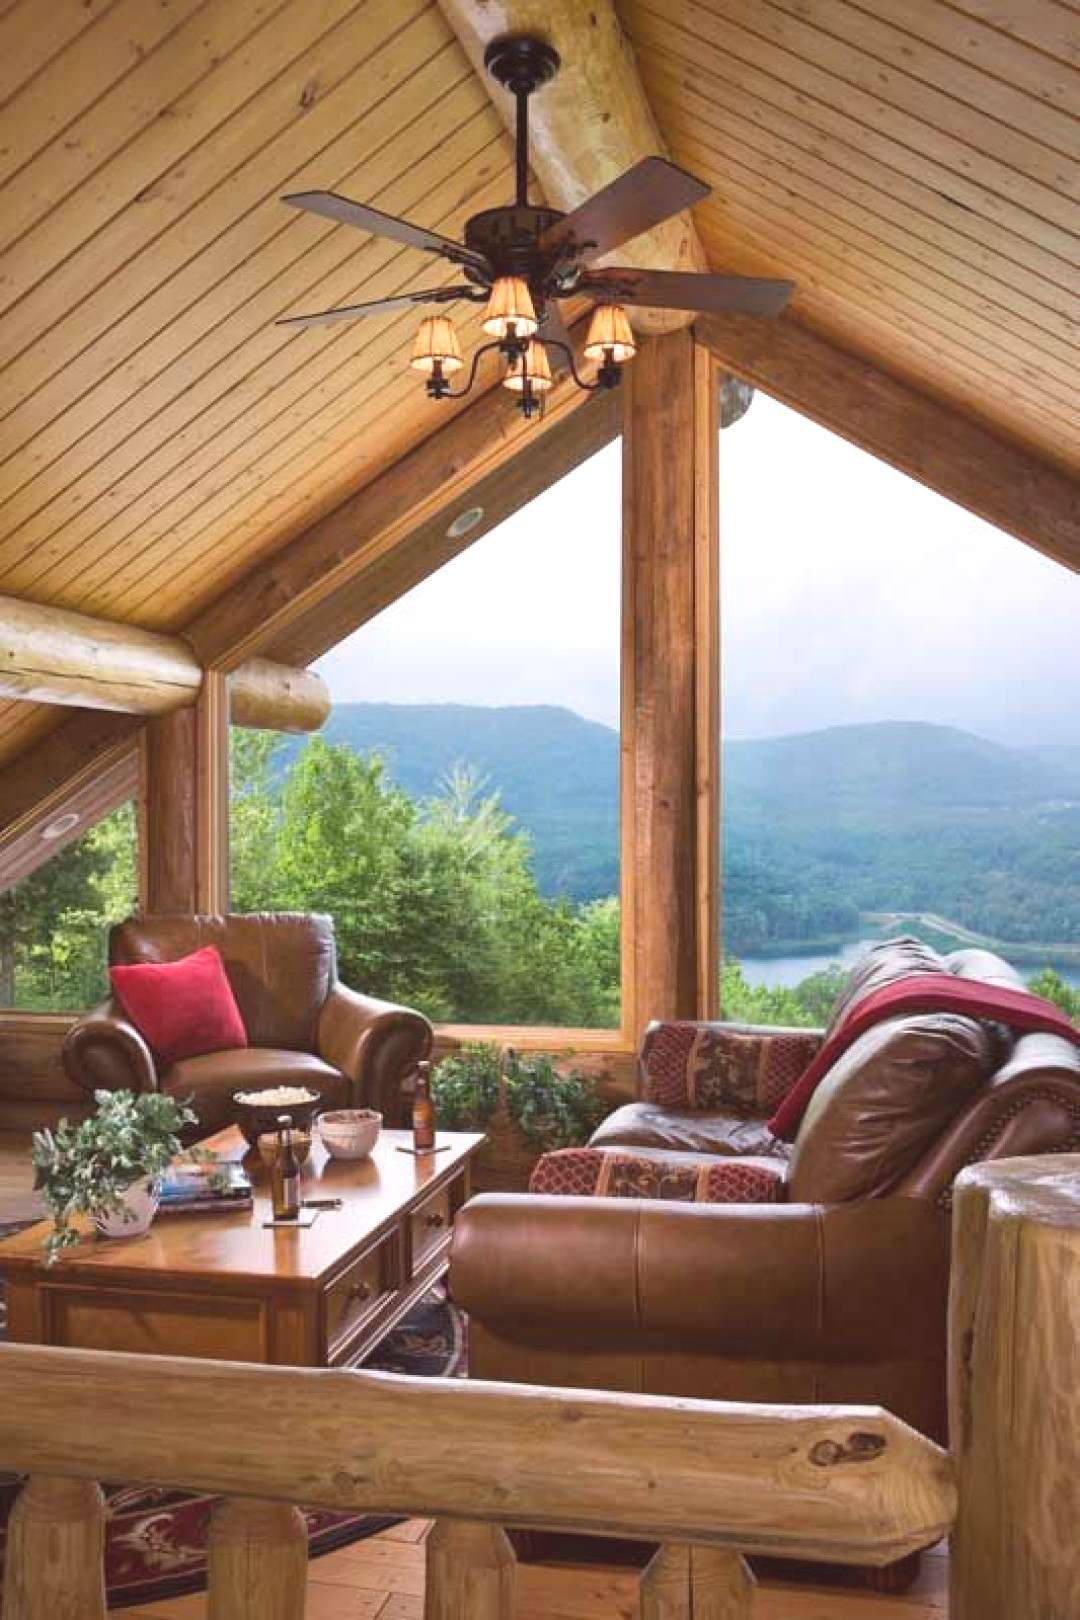 An Ill Wind Blows Much Good: A Handcrafted Pennsylvania Log Home -  An Ill Wind Blows Much Good: A